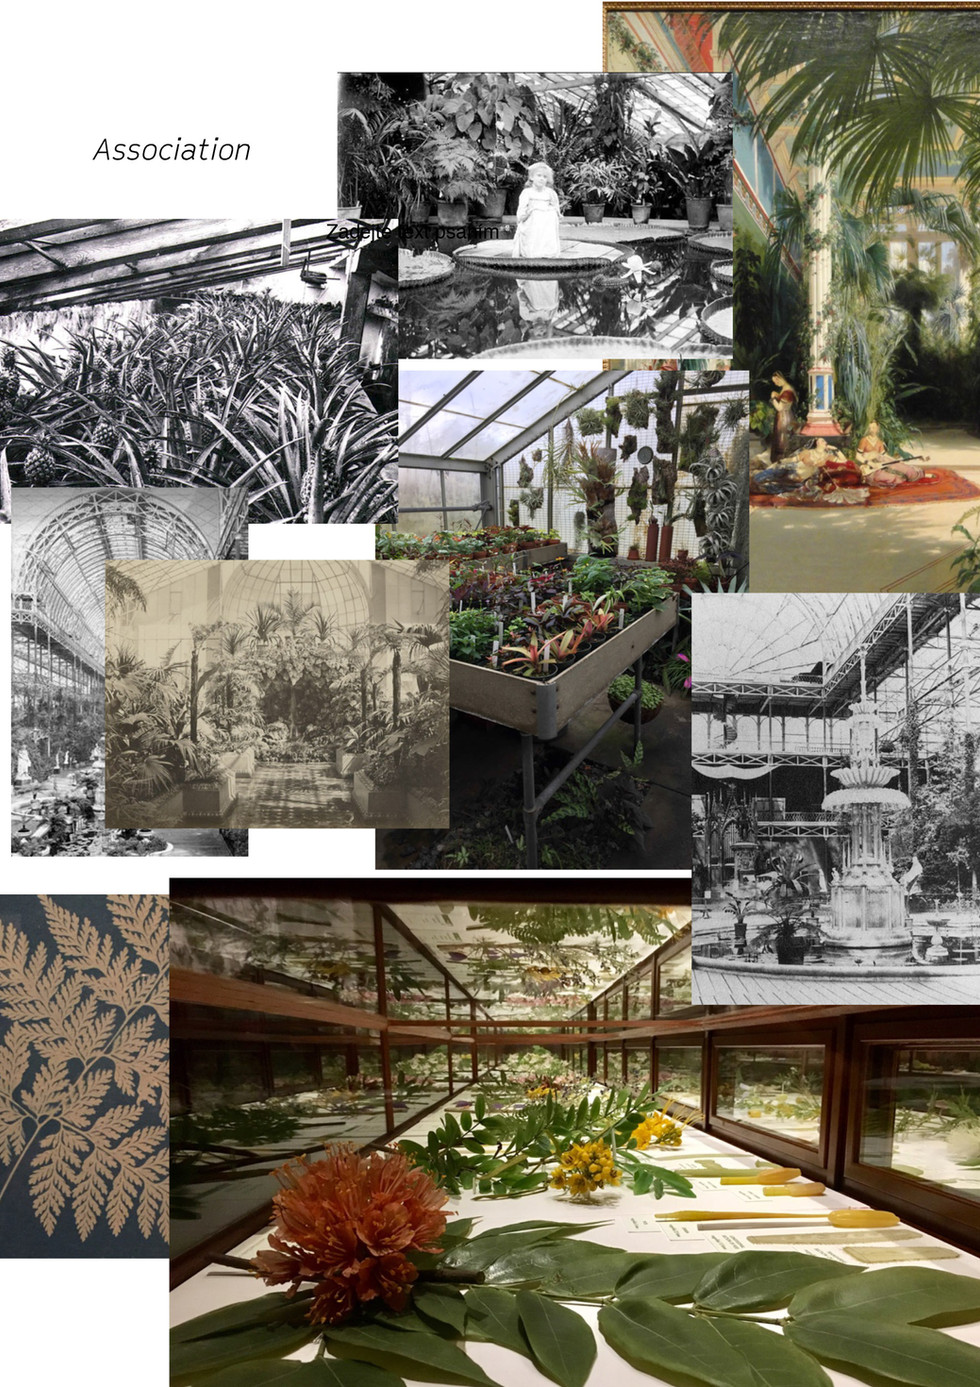 The Fourth Greenhouse